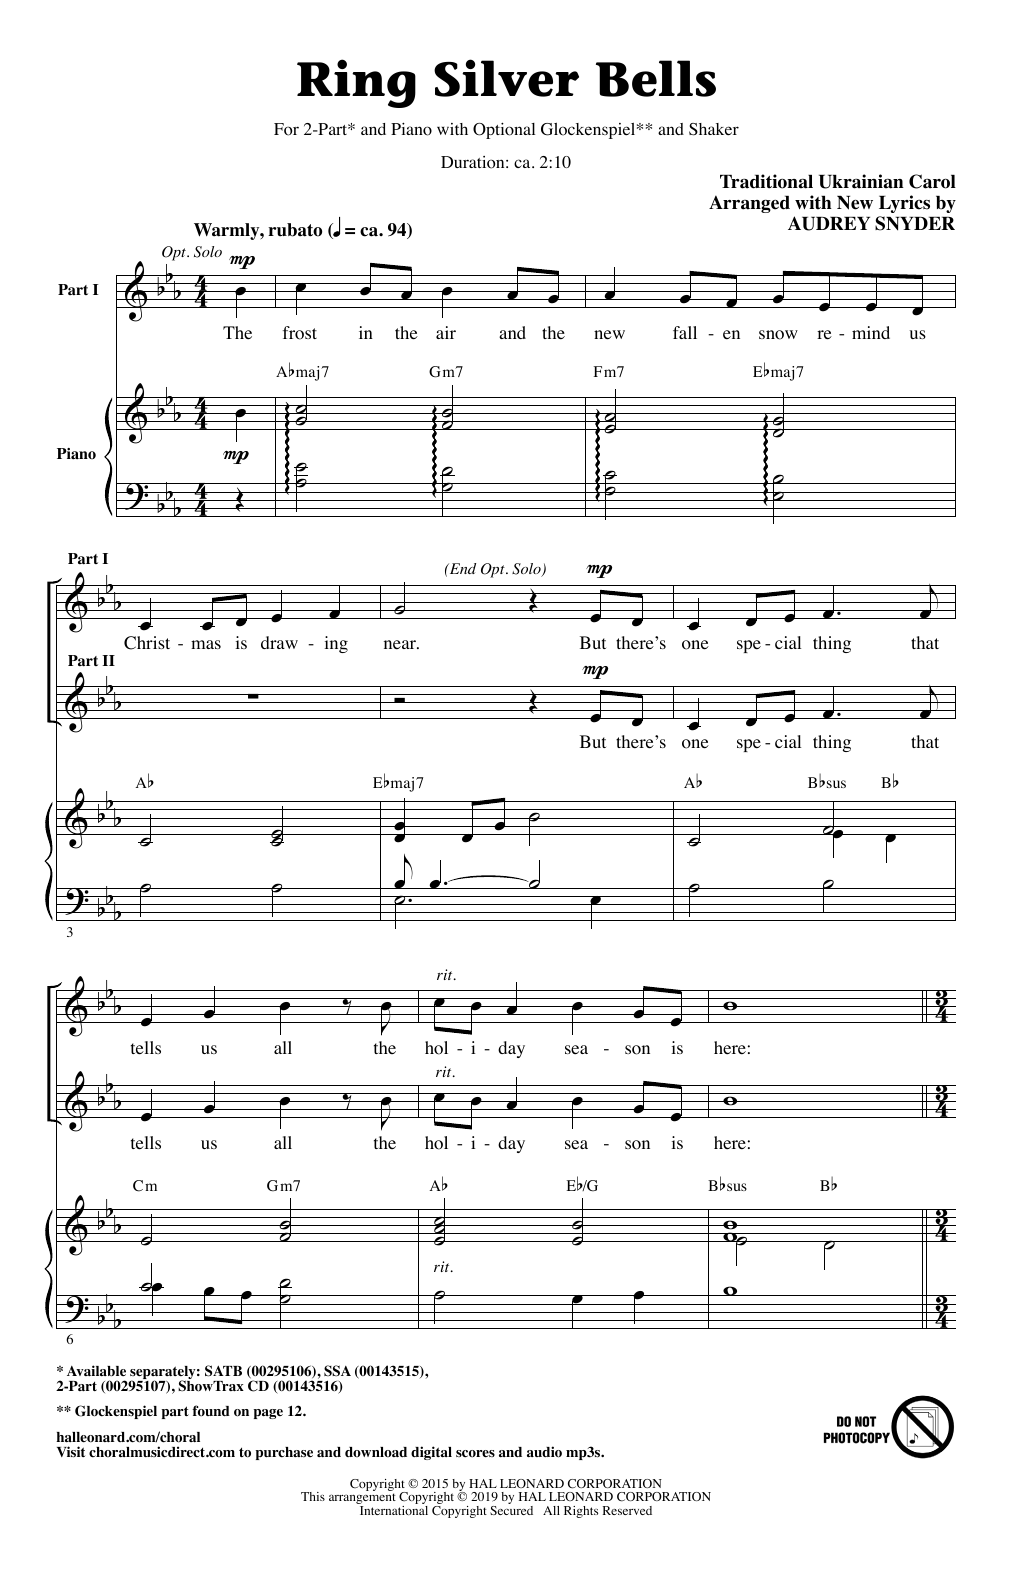 Traditional Ukrainian Carol Ring Silver Bells (arr. Audrey Snyder) sheet music notes and chords. Download Printable PDF.